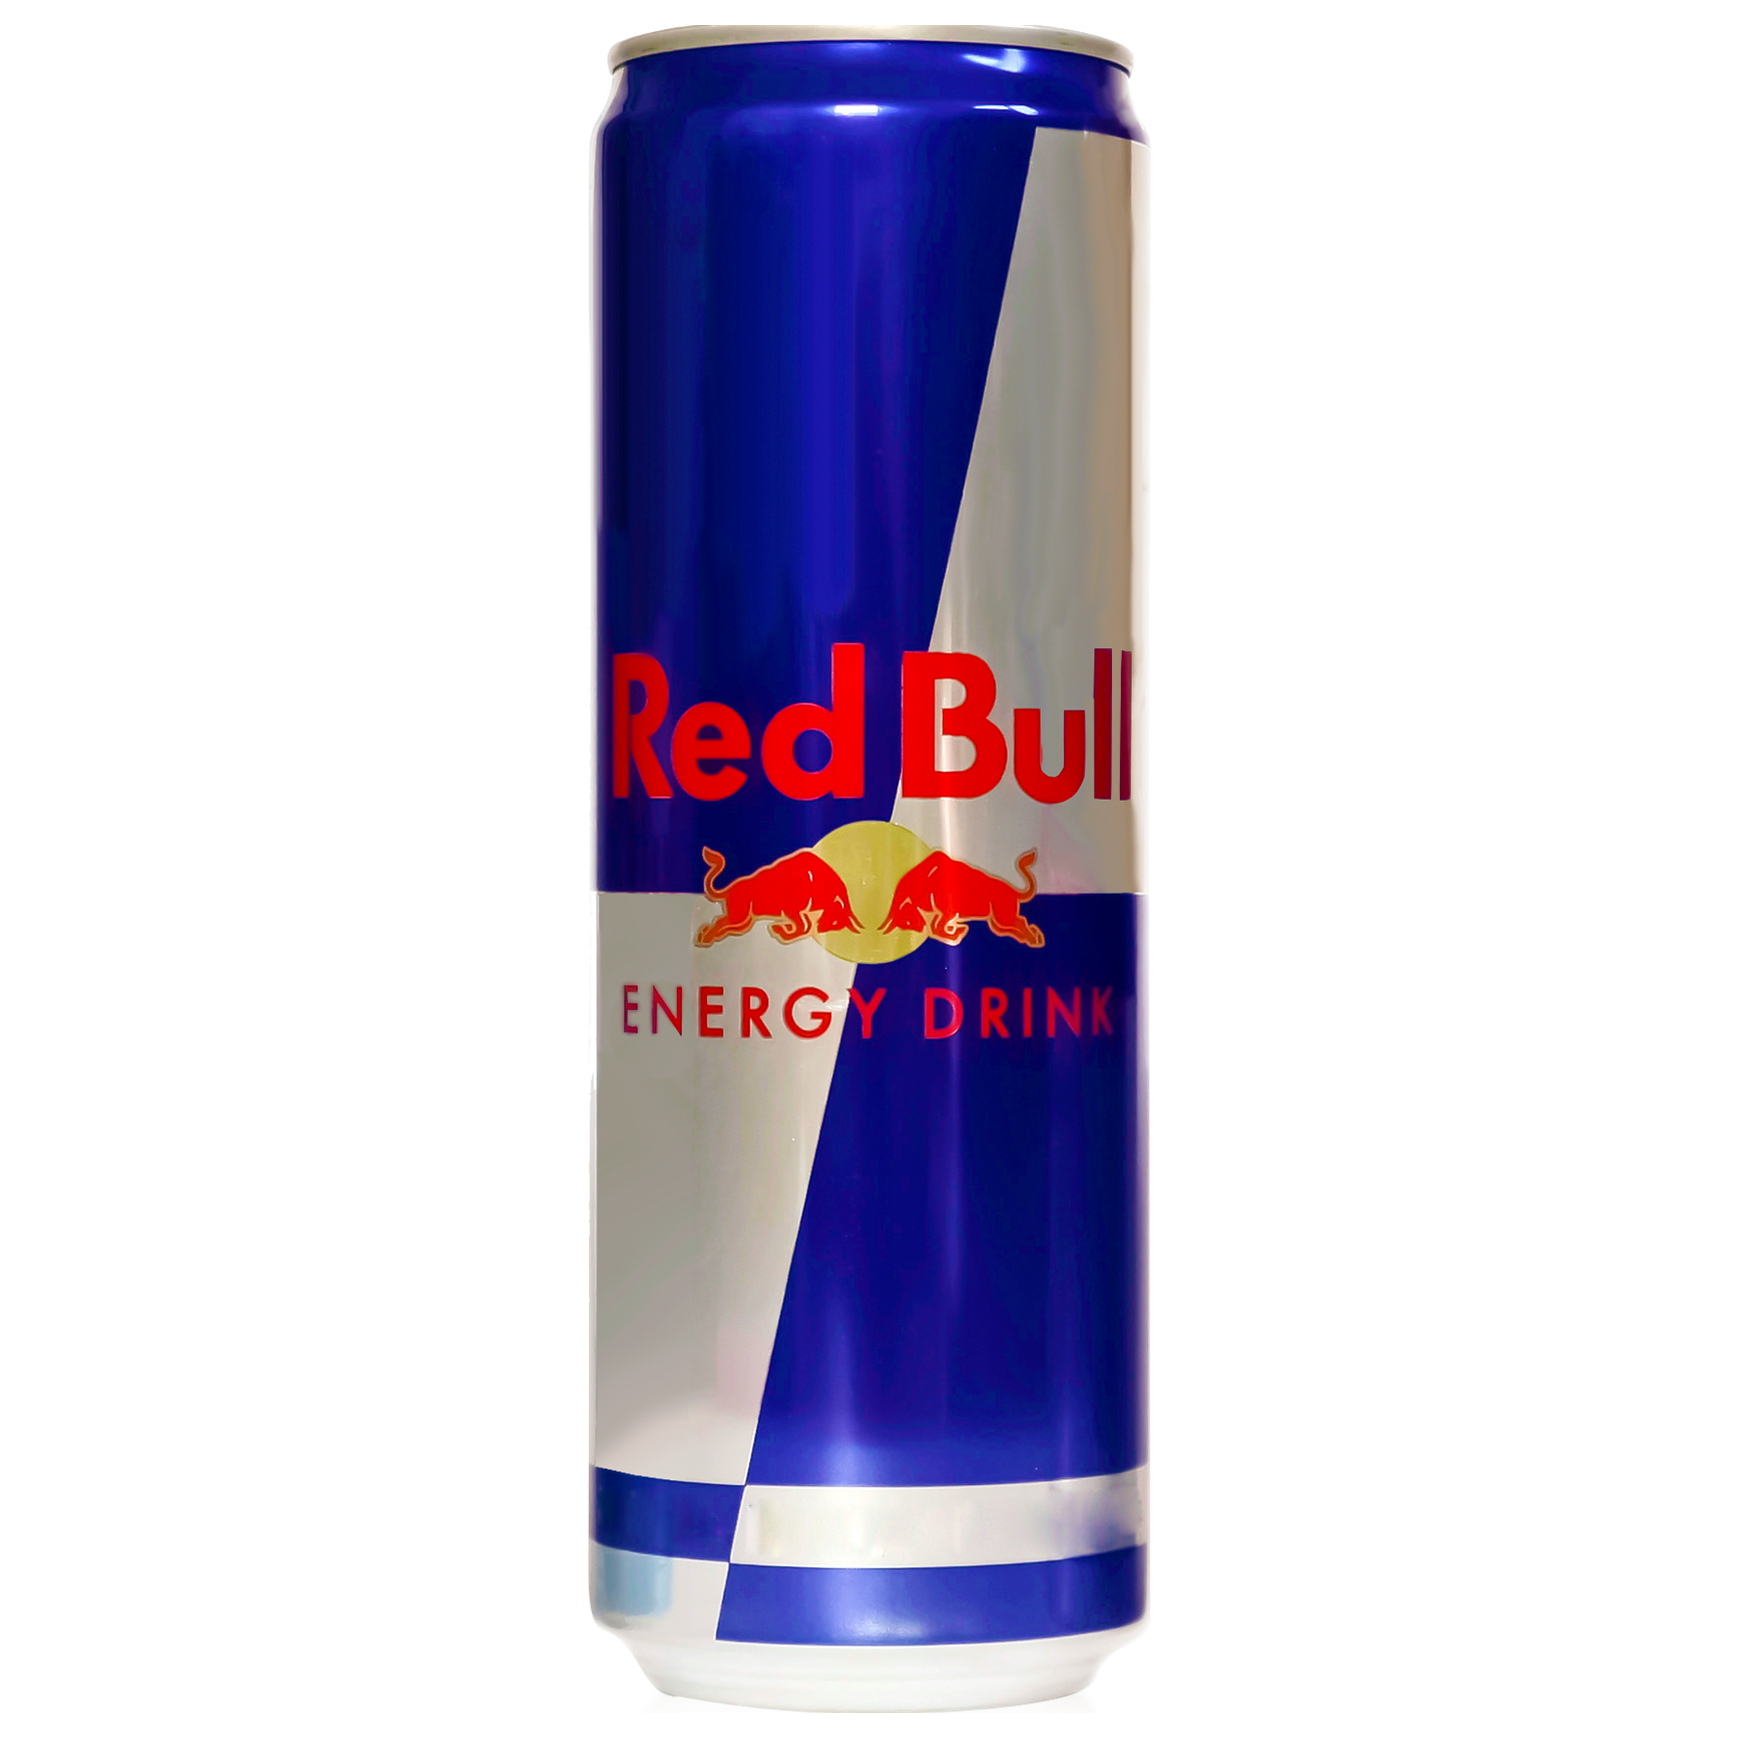 Red Bull (8.5oz can)